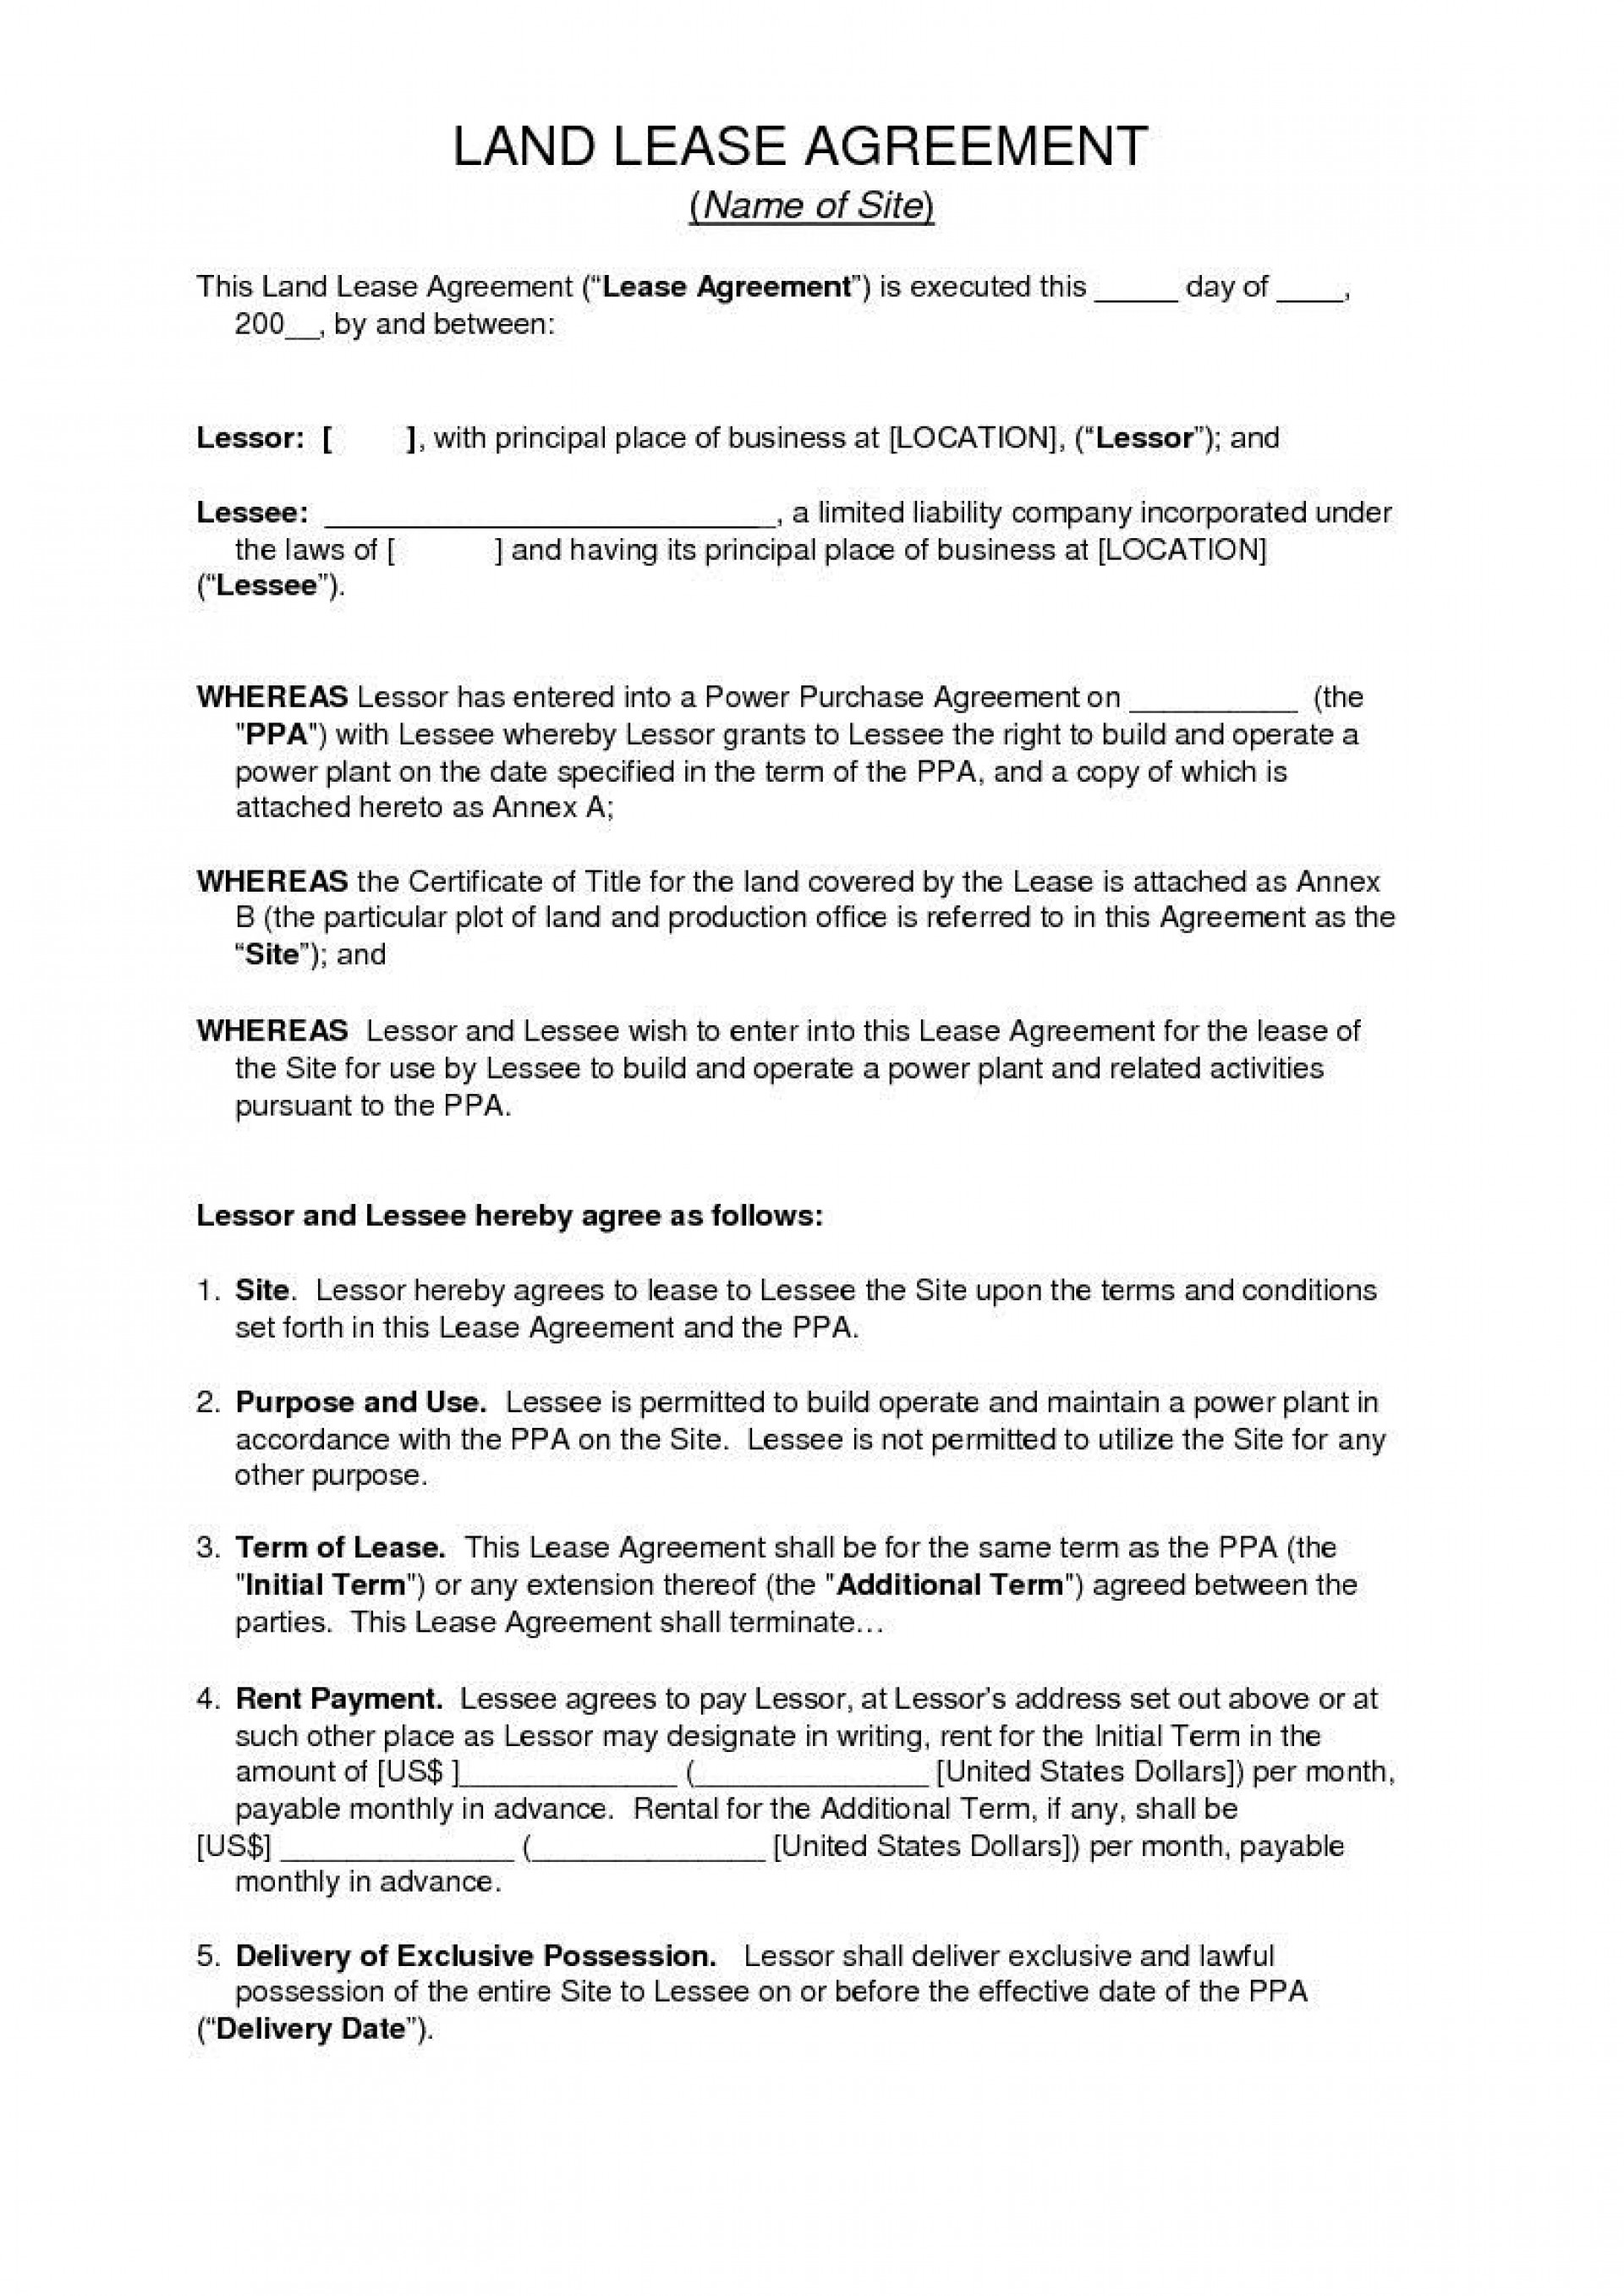 006 Unique Land Lease Agreement Template Highest Quality  Templates Uk Farm Free1920